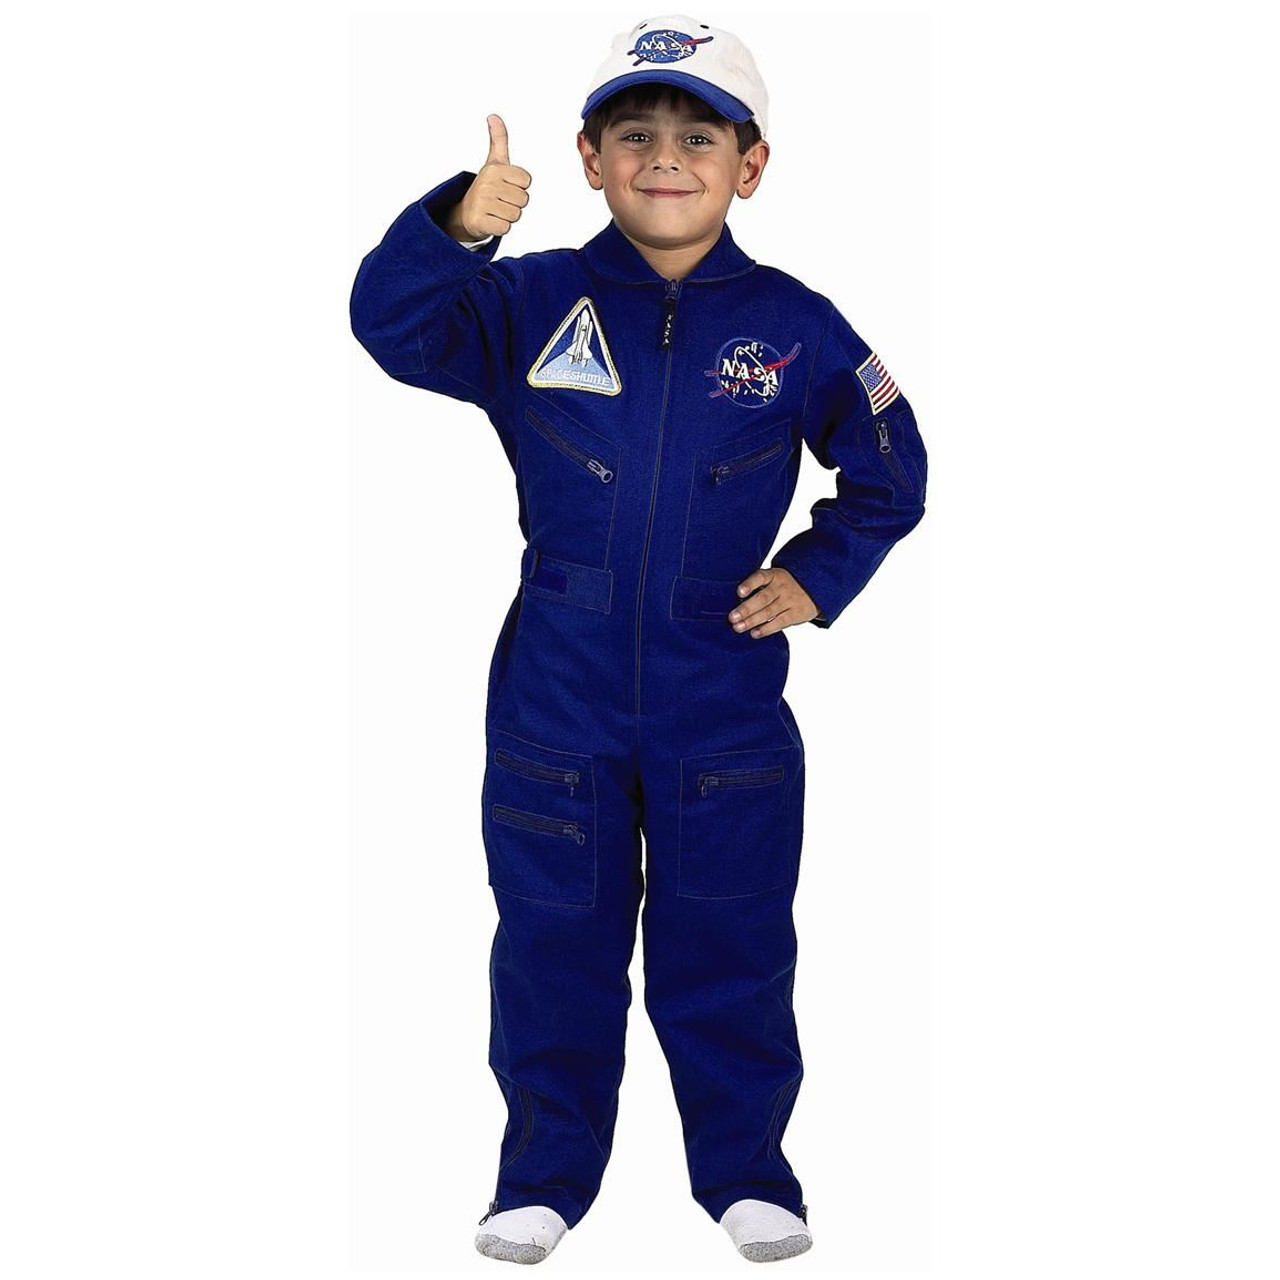 Halloween Costumes For Kids Boys 10 And Up.Jr Flight Suit Nasa Blue Jumpsuit Astronaut Kids Boys Halloween Costume 8 10